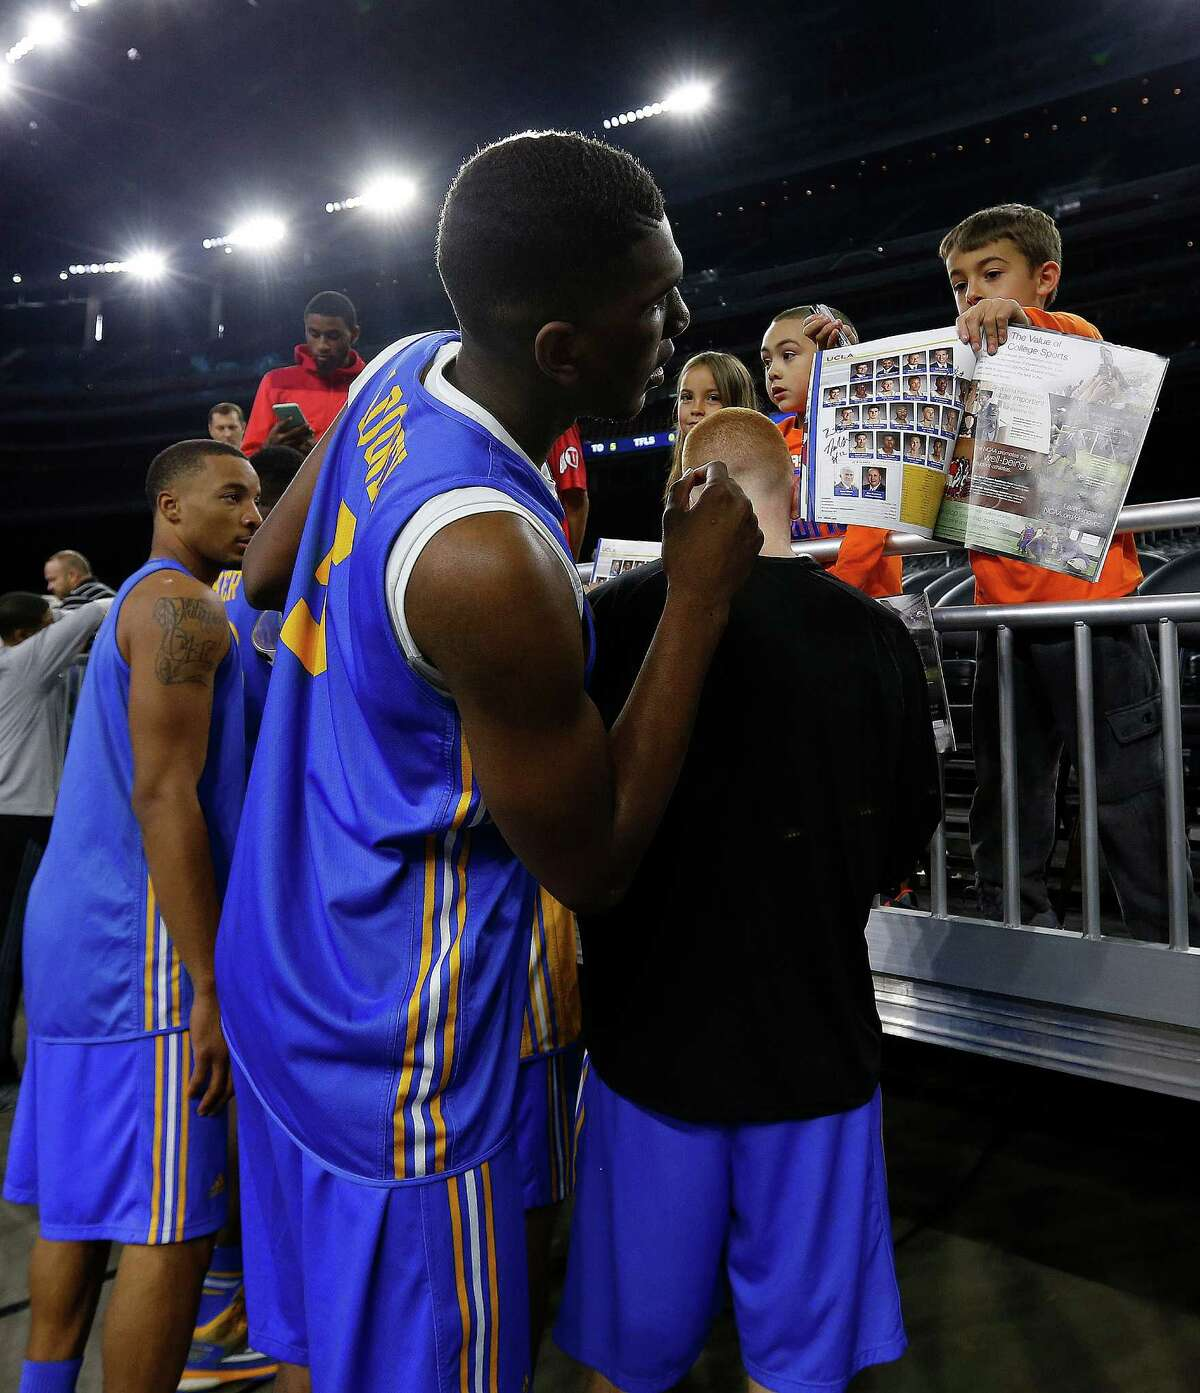 UCLA Bruins forward Kevon Looney (5) signs autographs for fans along with other teammates after their shoot around at NRG Stadium, Thursday, March 26, 2015, in Houston.